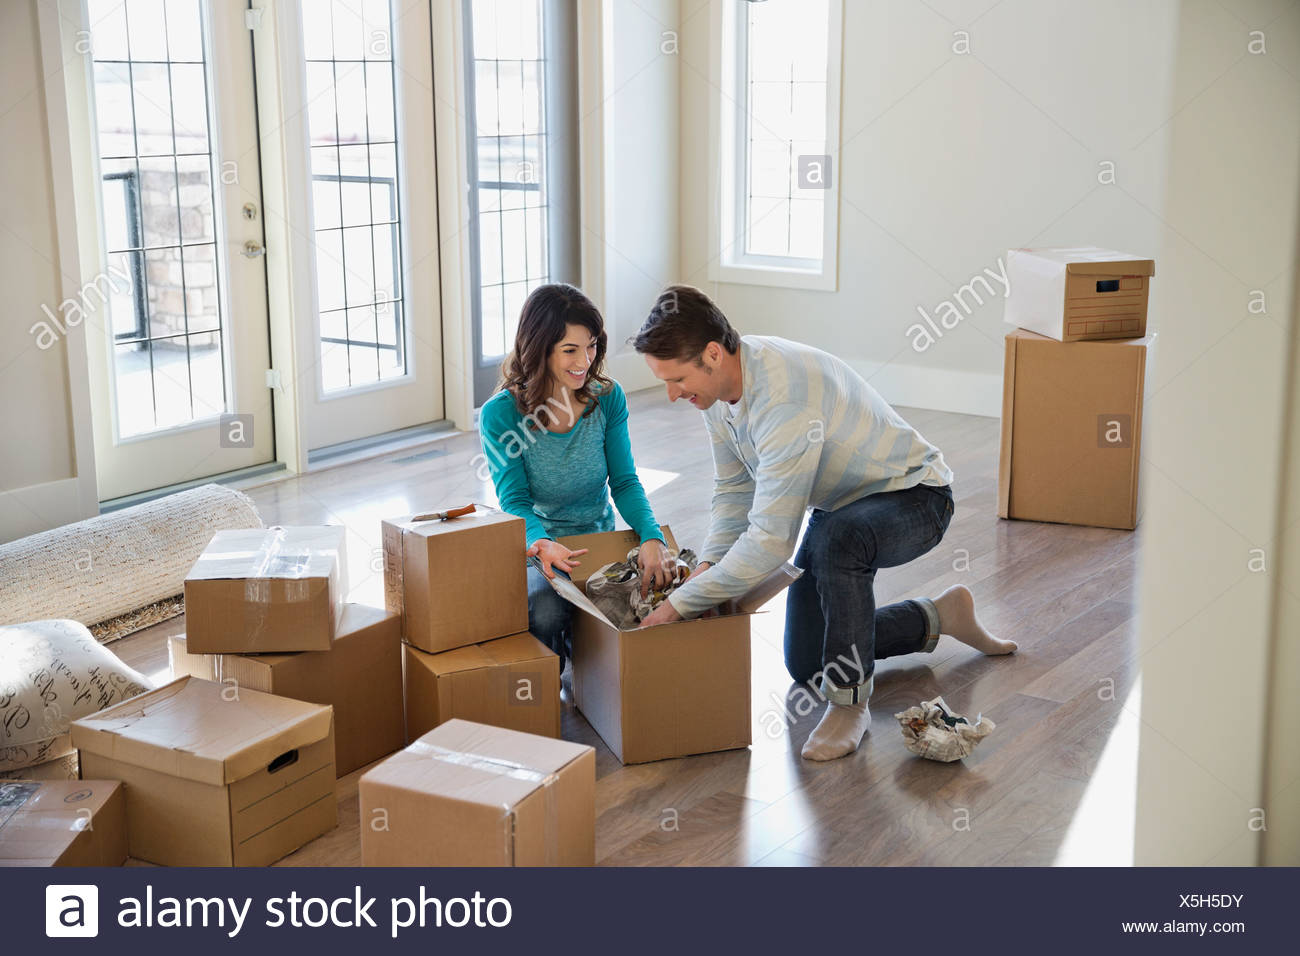 Couple unpacking cardboard boxes in new home - Stock Image